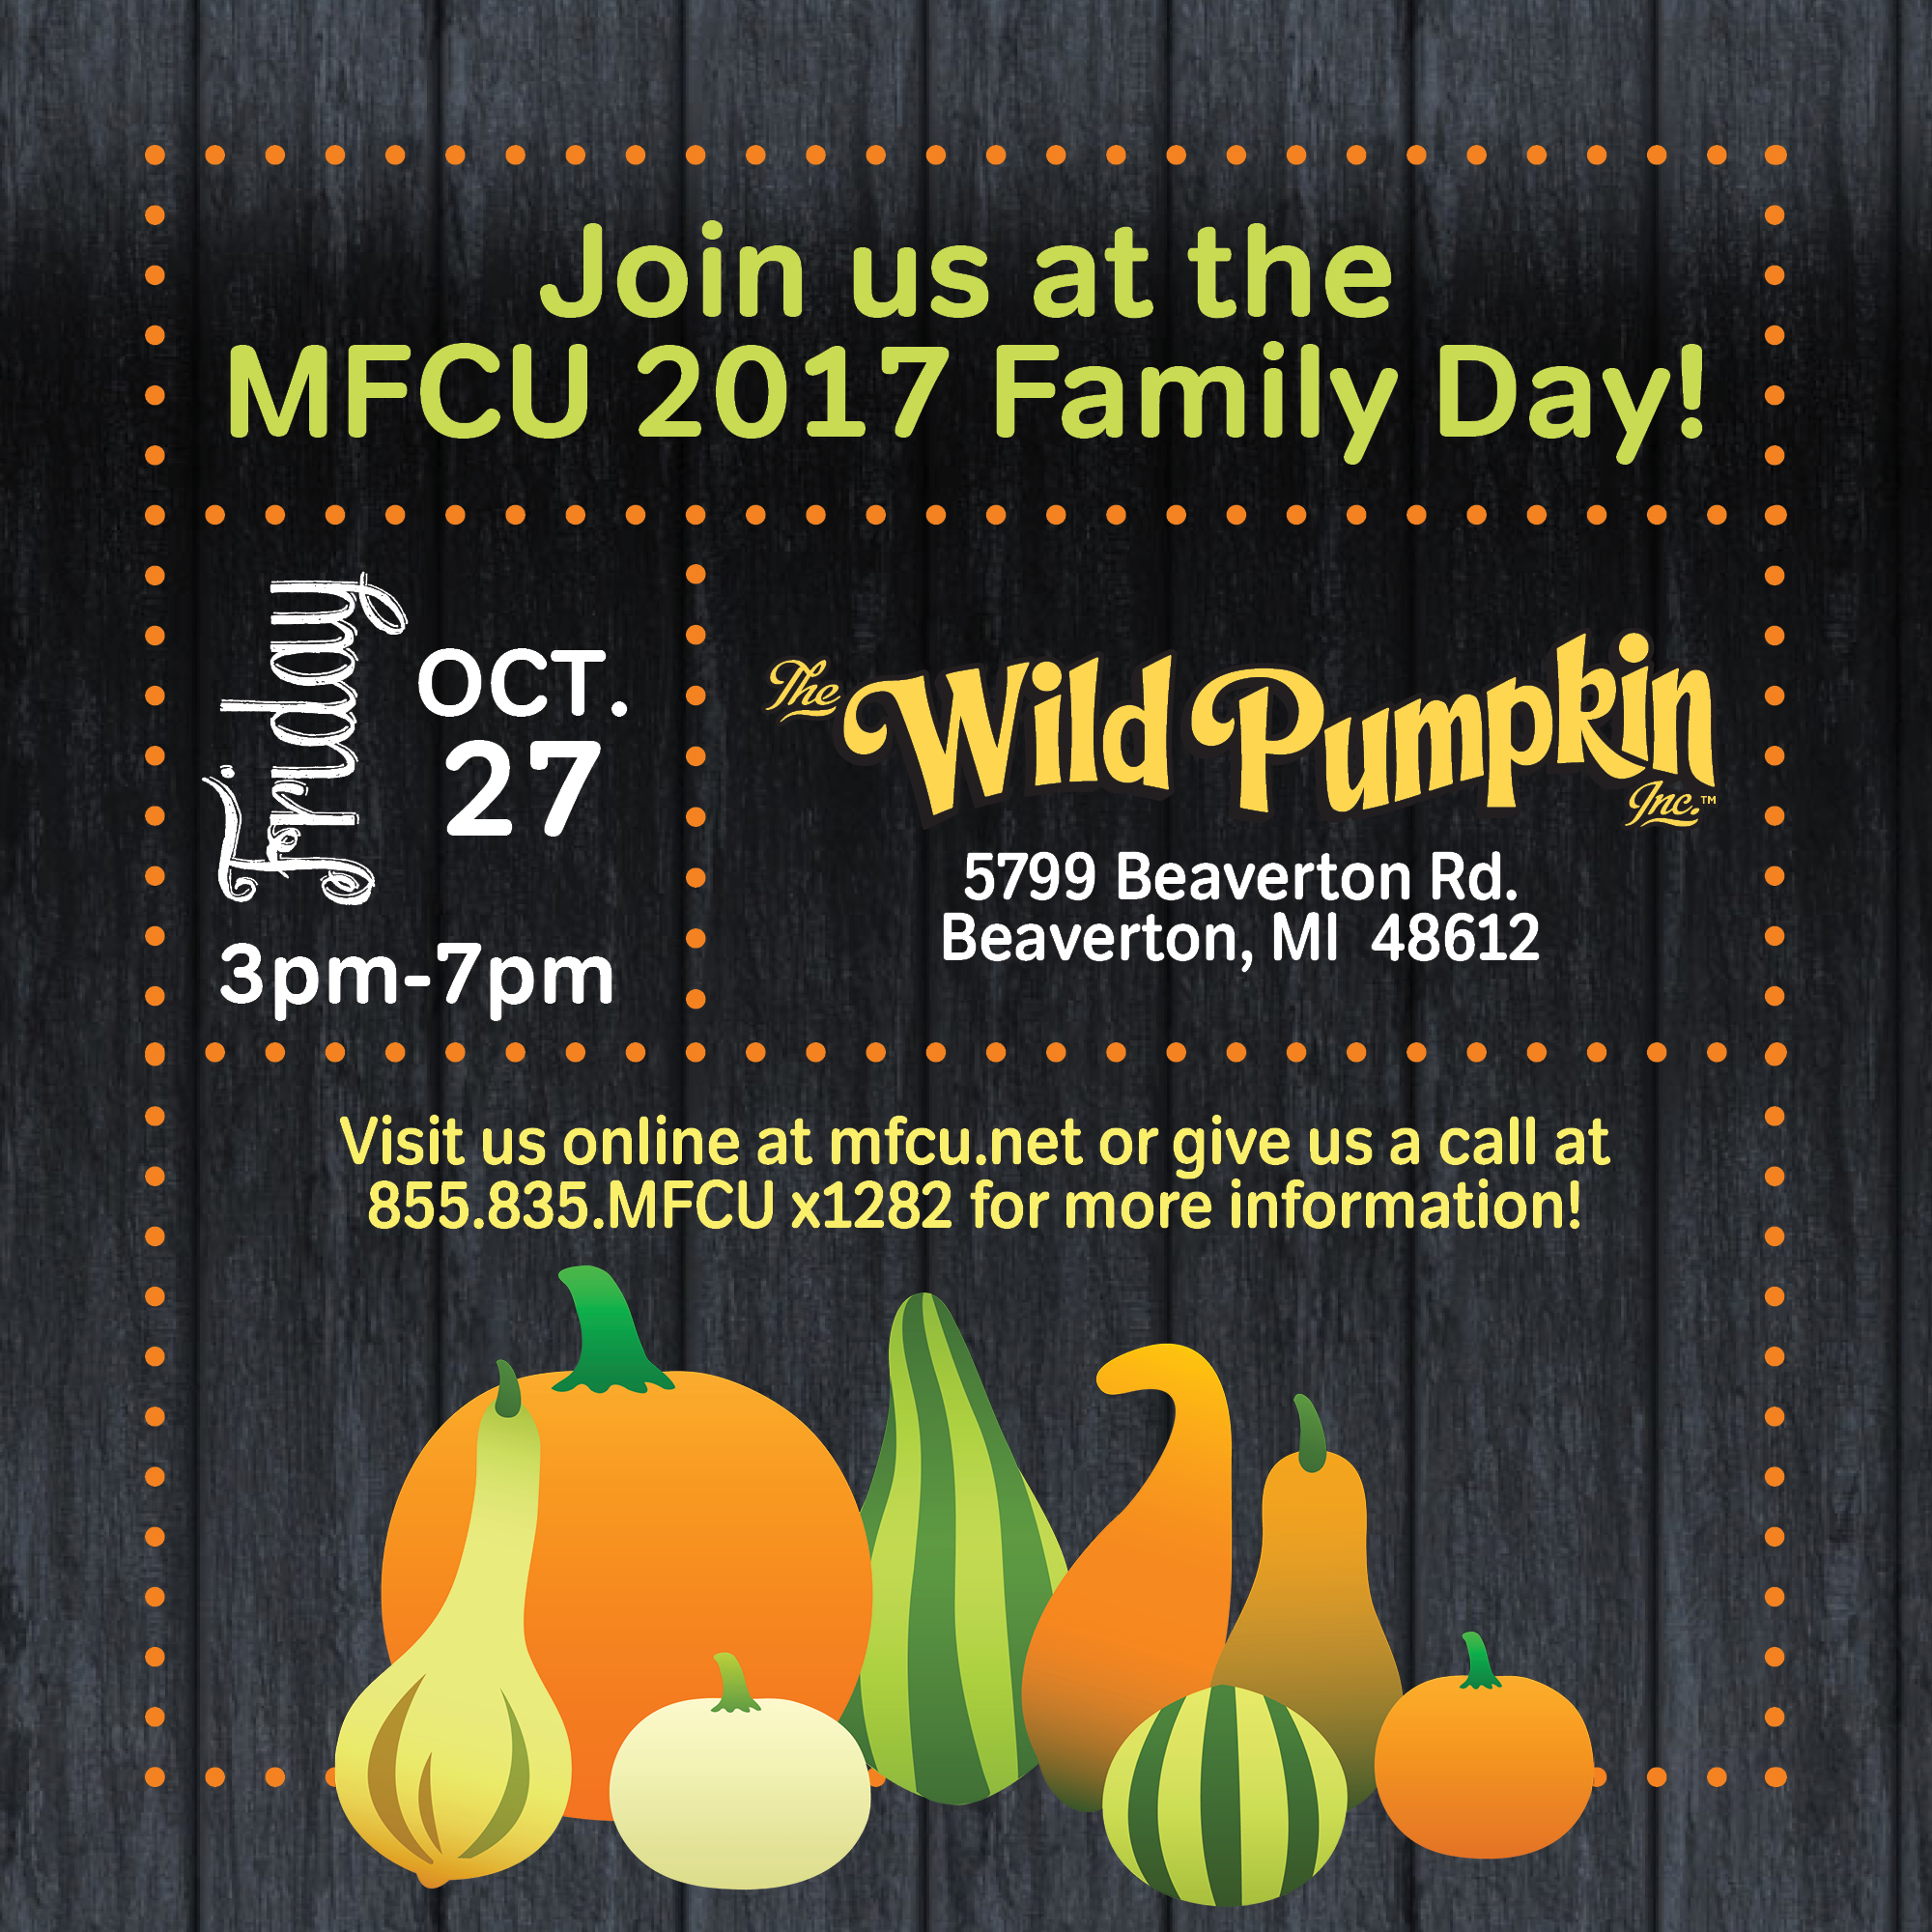 My Family Dollar Life Pay Stub - If you have any questions about family day please contact mara at 855 835 mfcu ext 1282 or msimanskey mfcu net